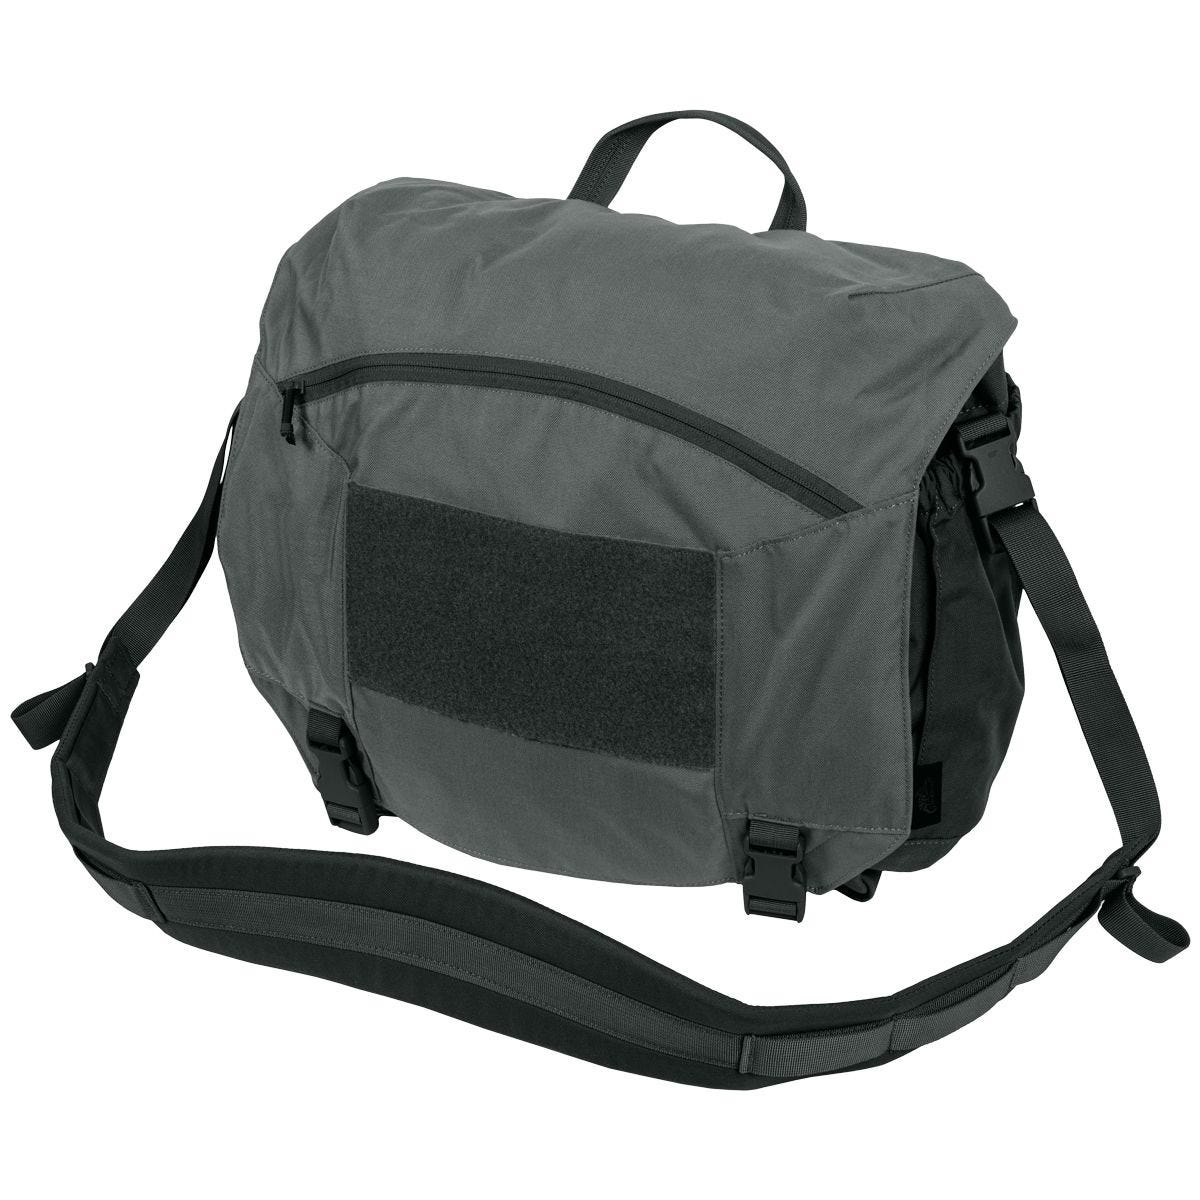 The Helikon Urban Courier Bag Large travel product recommended by Lukas on Lifney.